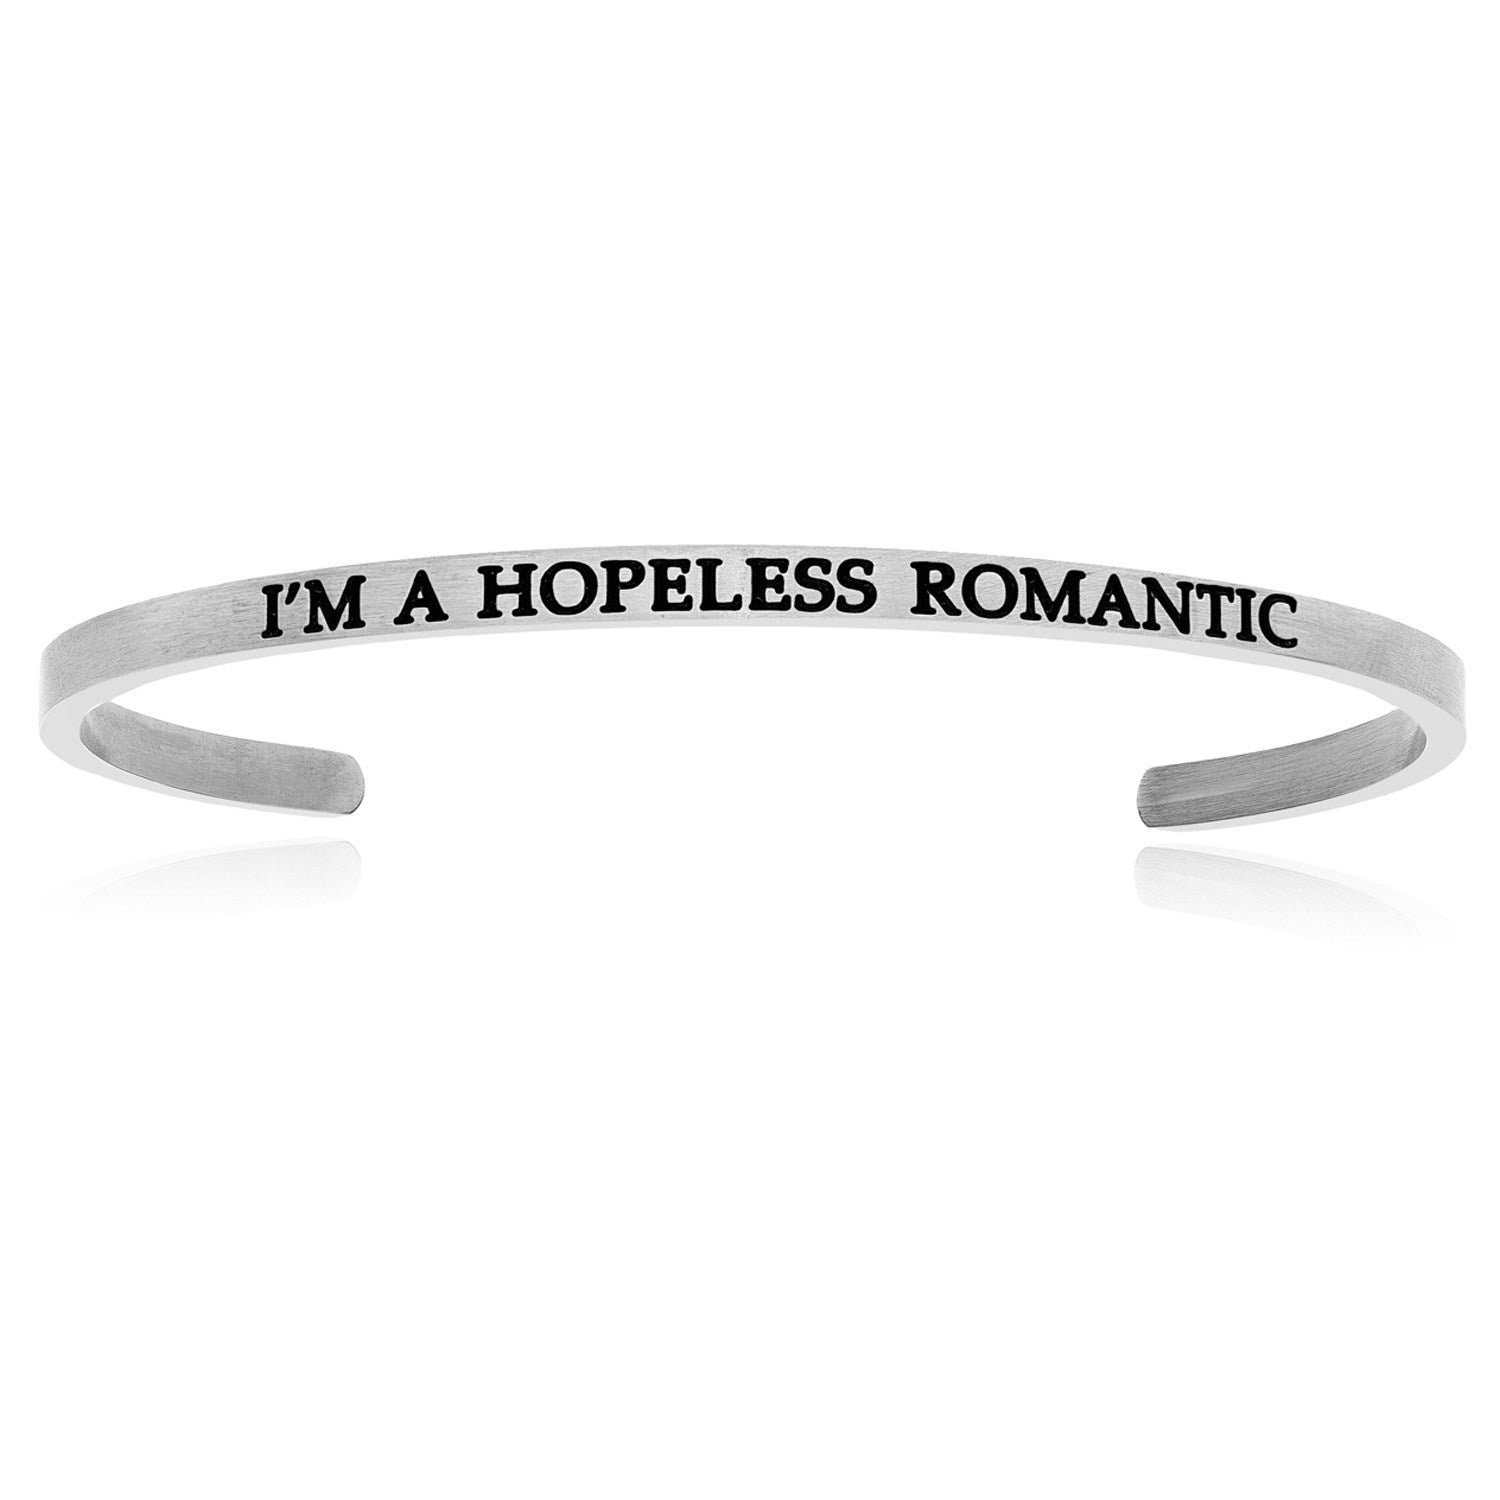 Stainless Steel I'm A Hopeless Romantic Cuff Bracelet